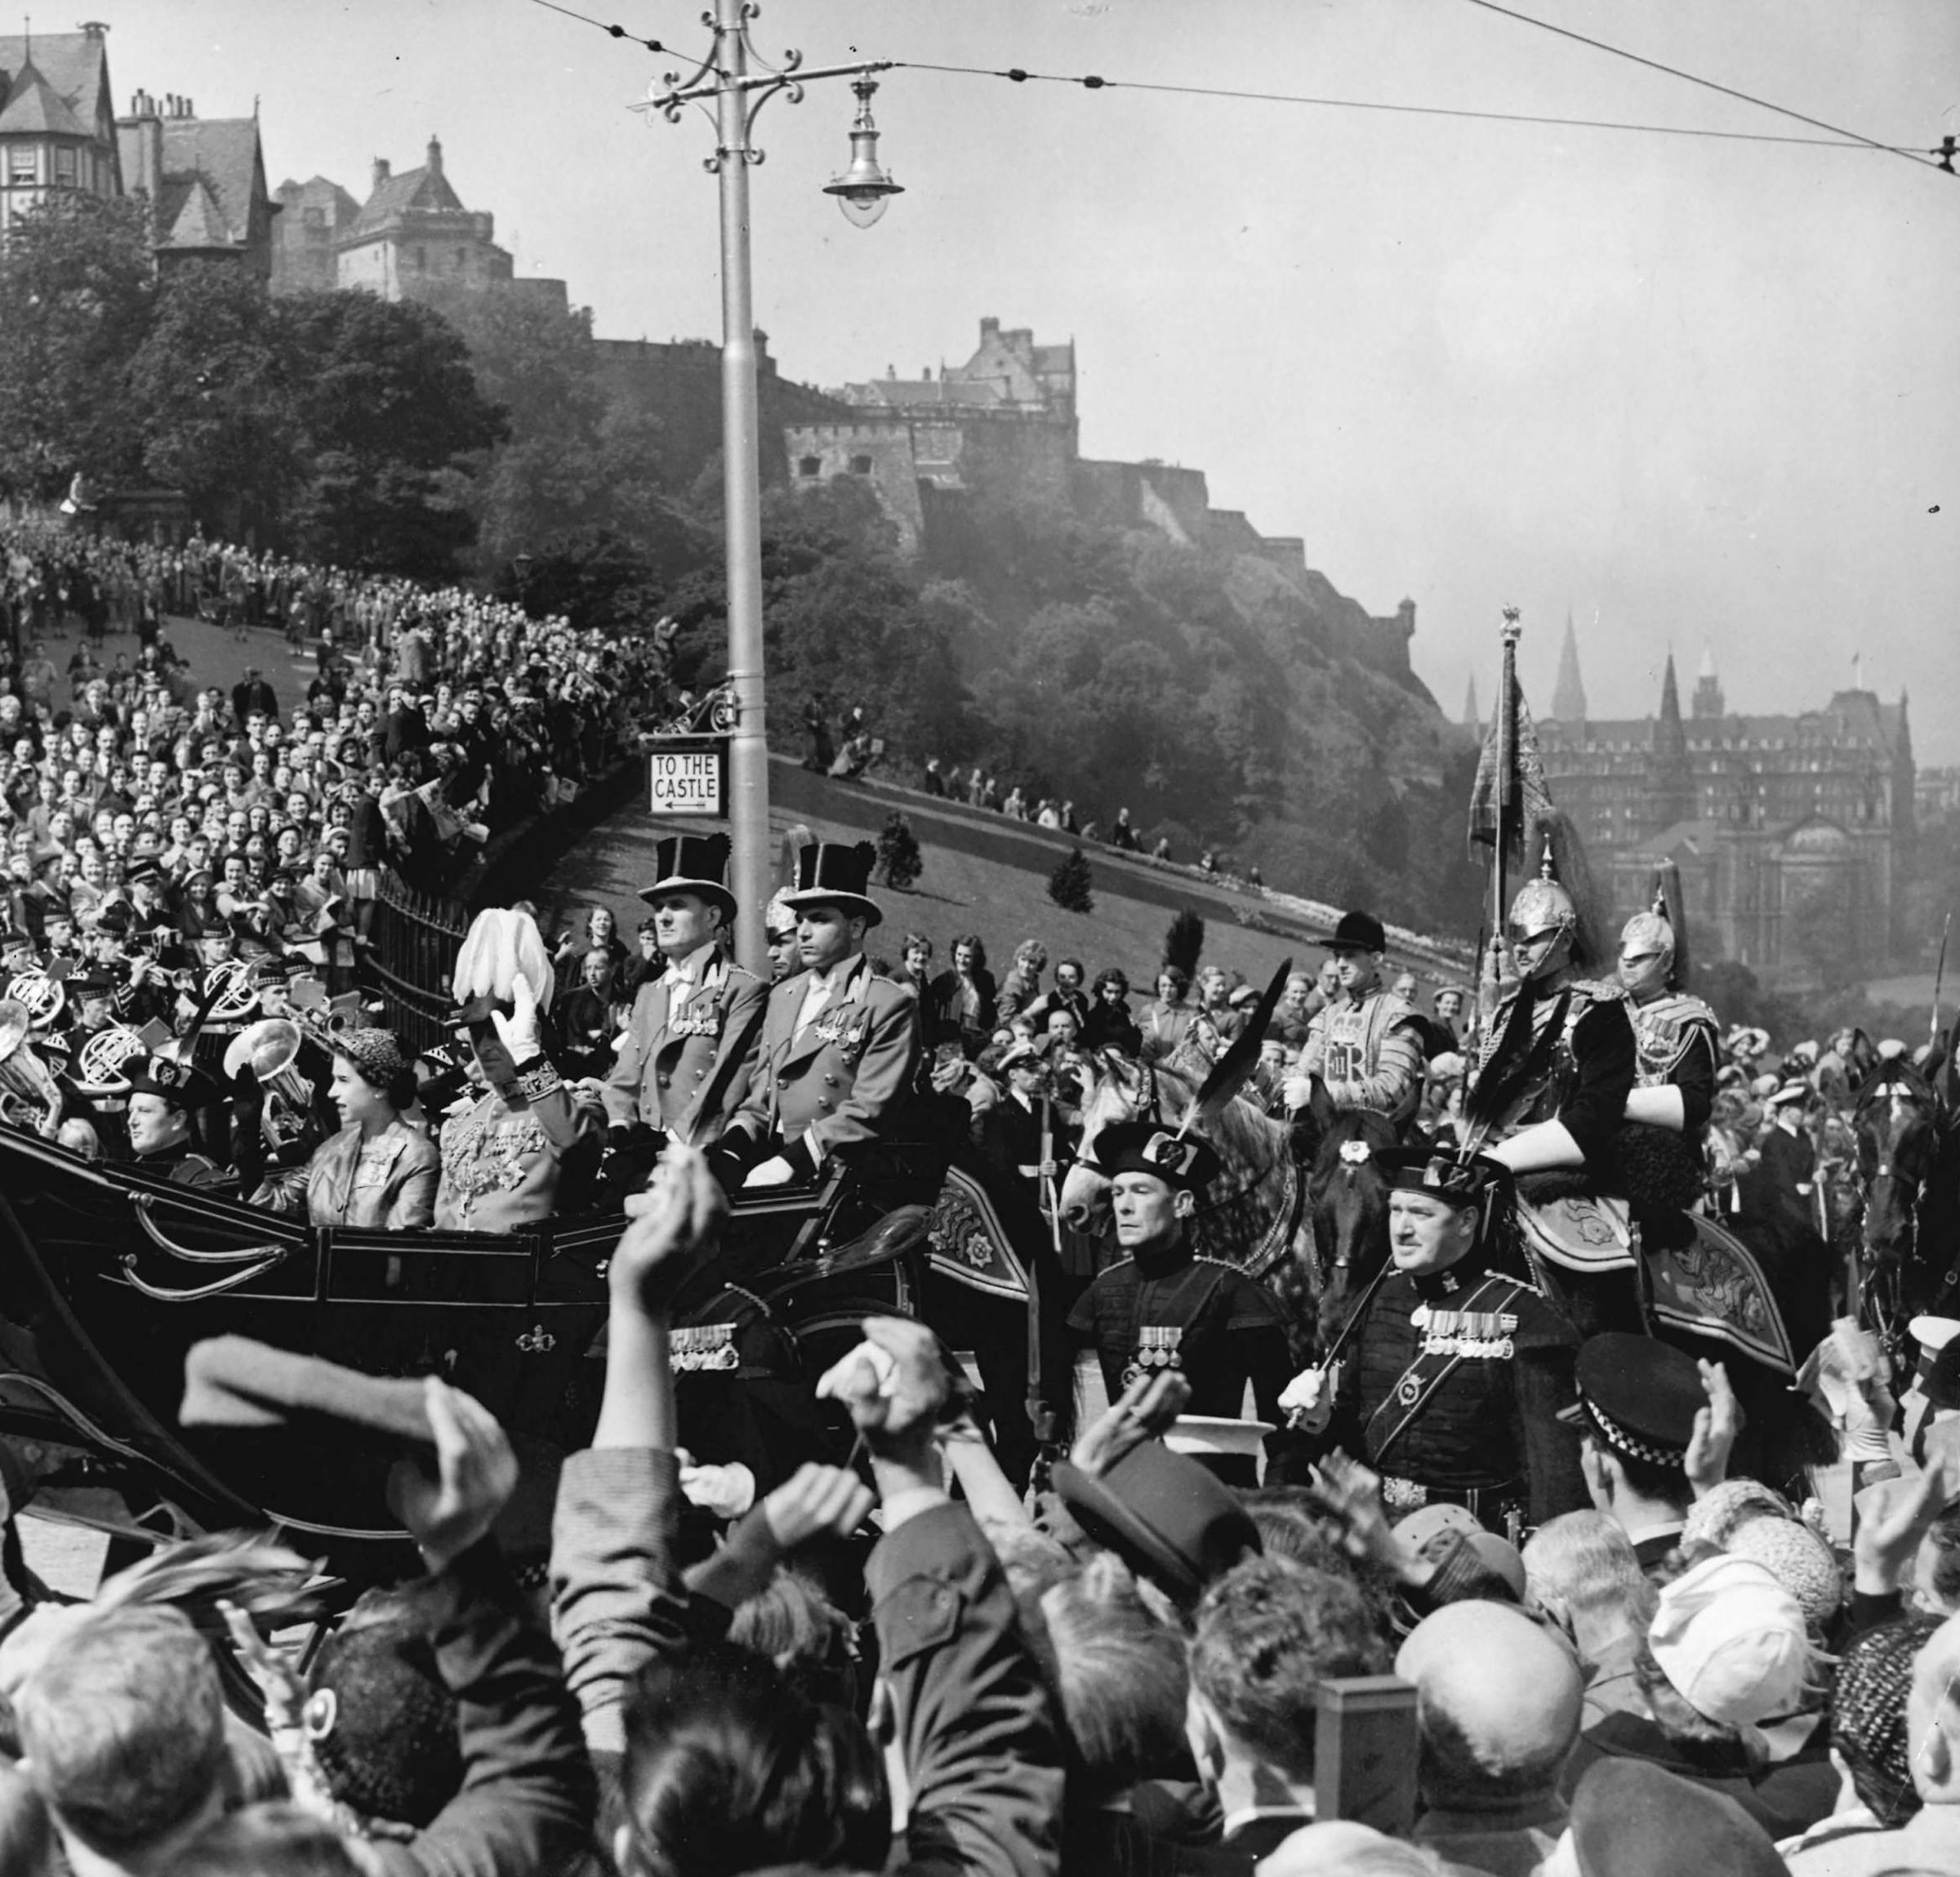 Those were the days - 1953: The Queen's State visit to Edinburgh